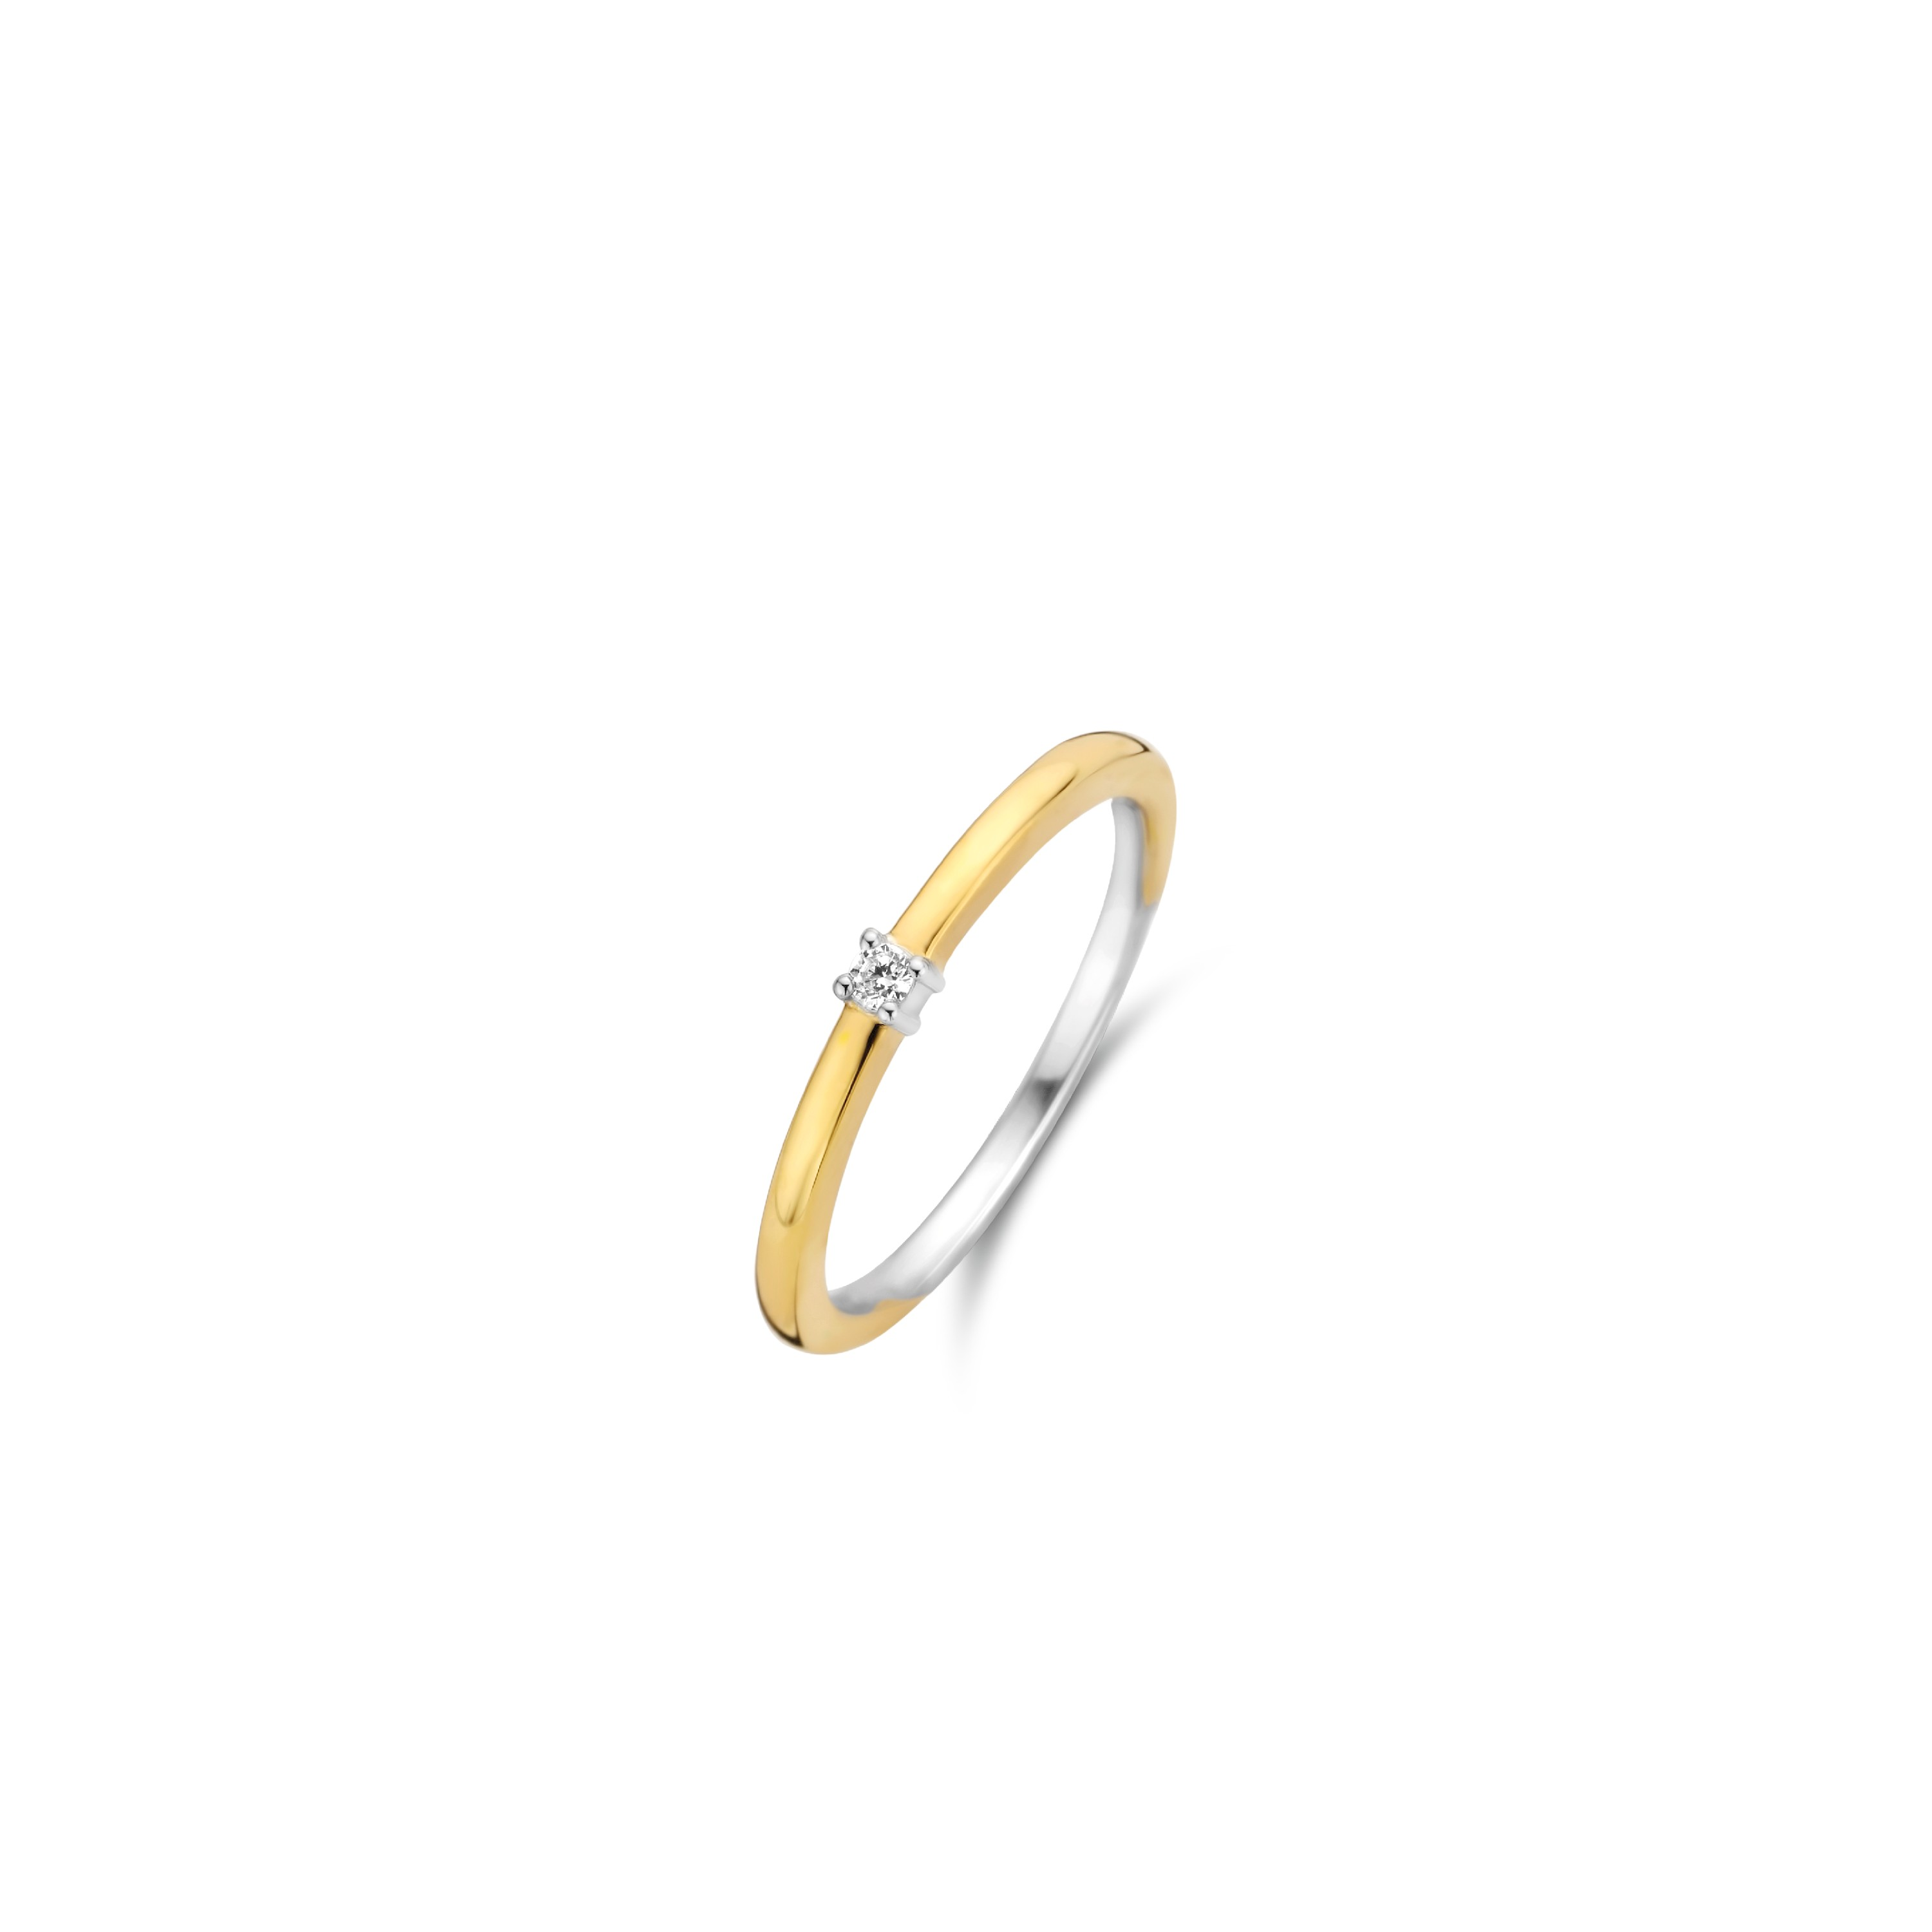 TI SENTO Milano Ring 12210ZY Zilver gold plated Maat 62